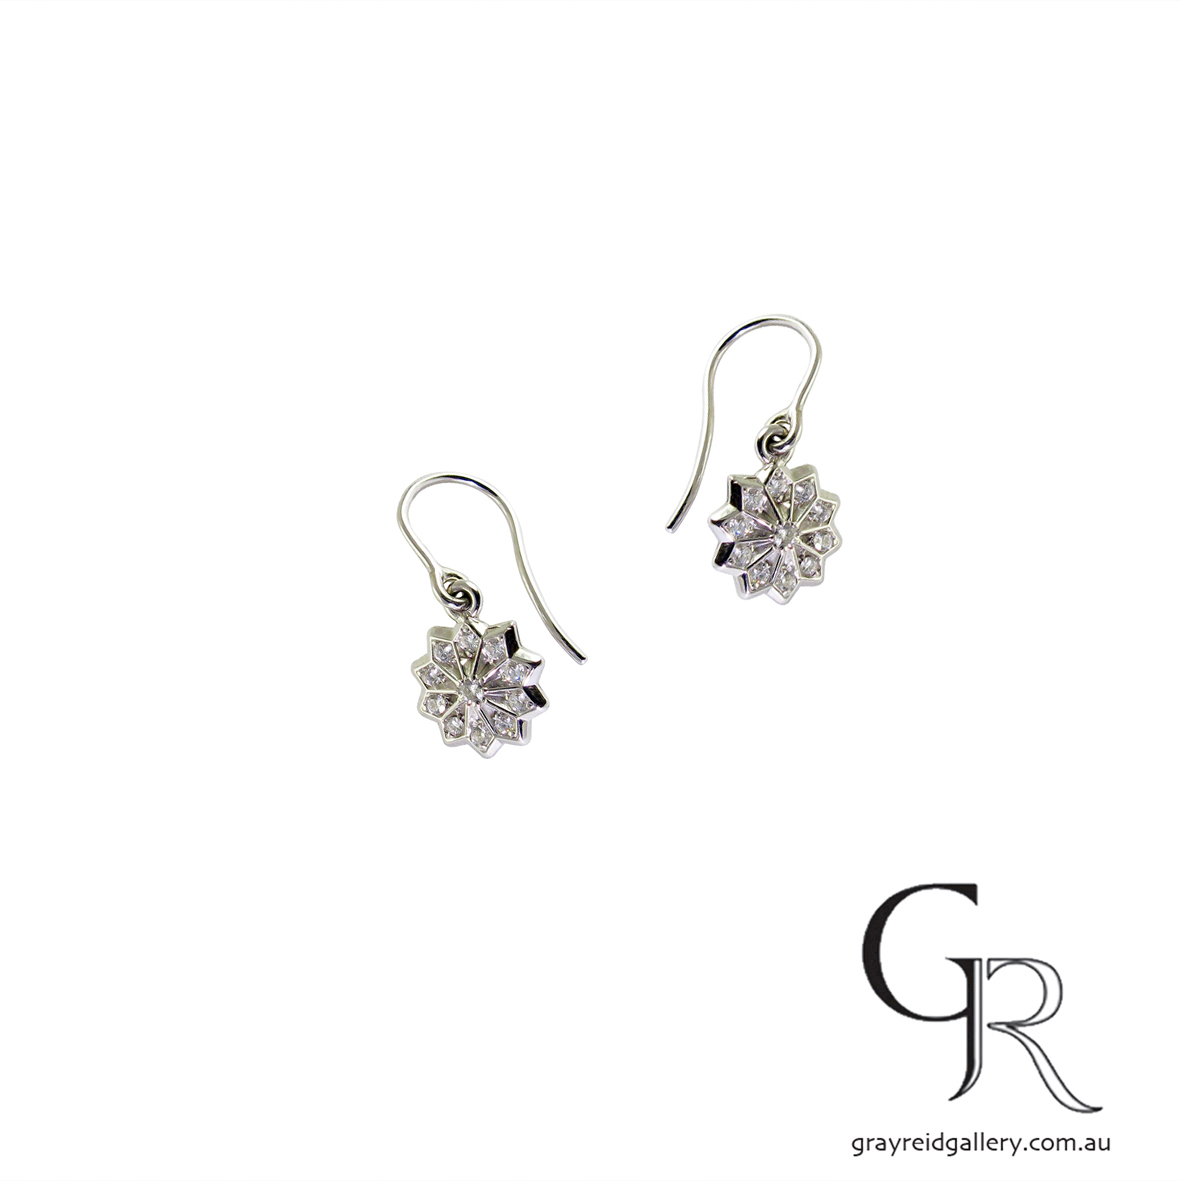 White Gold Diamond 'Star' Earrings